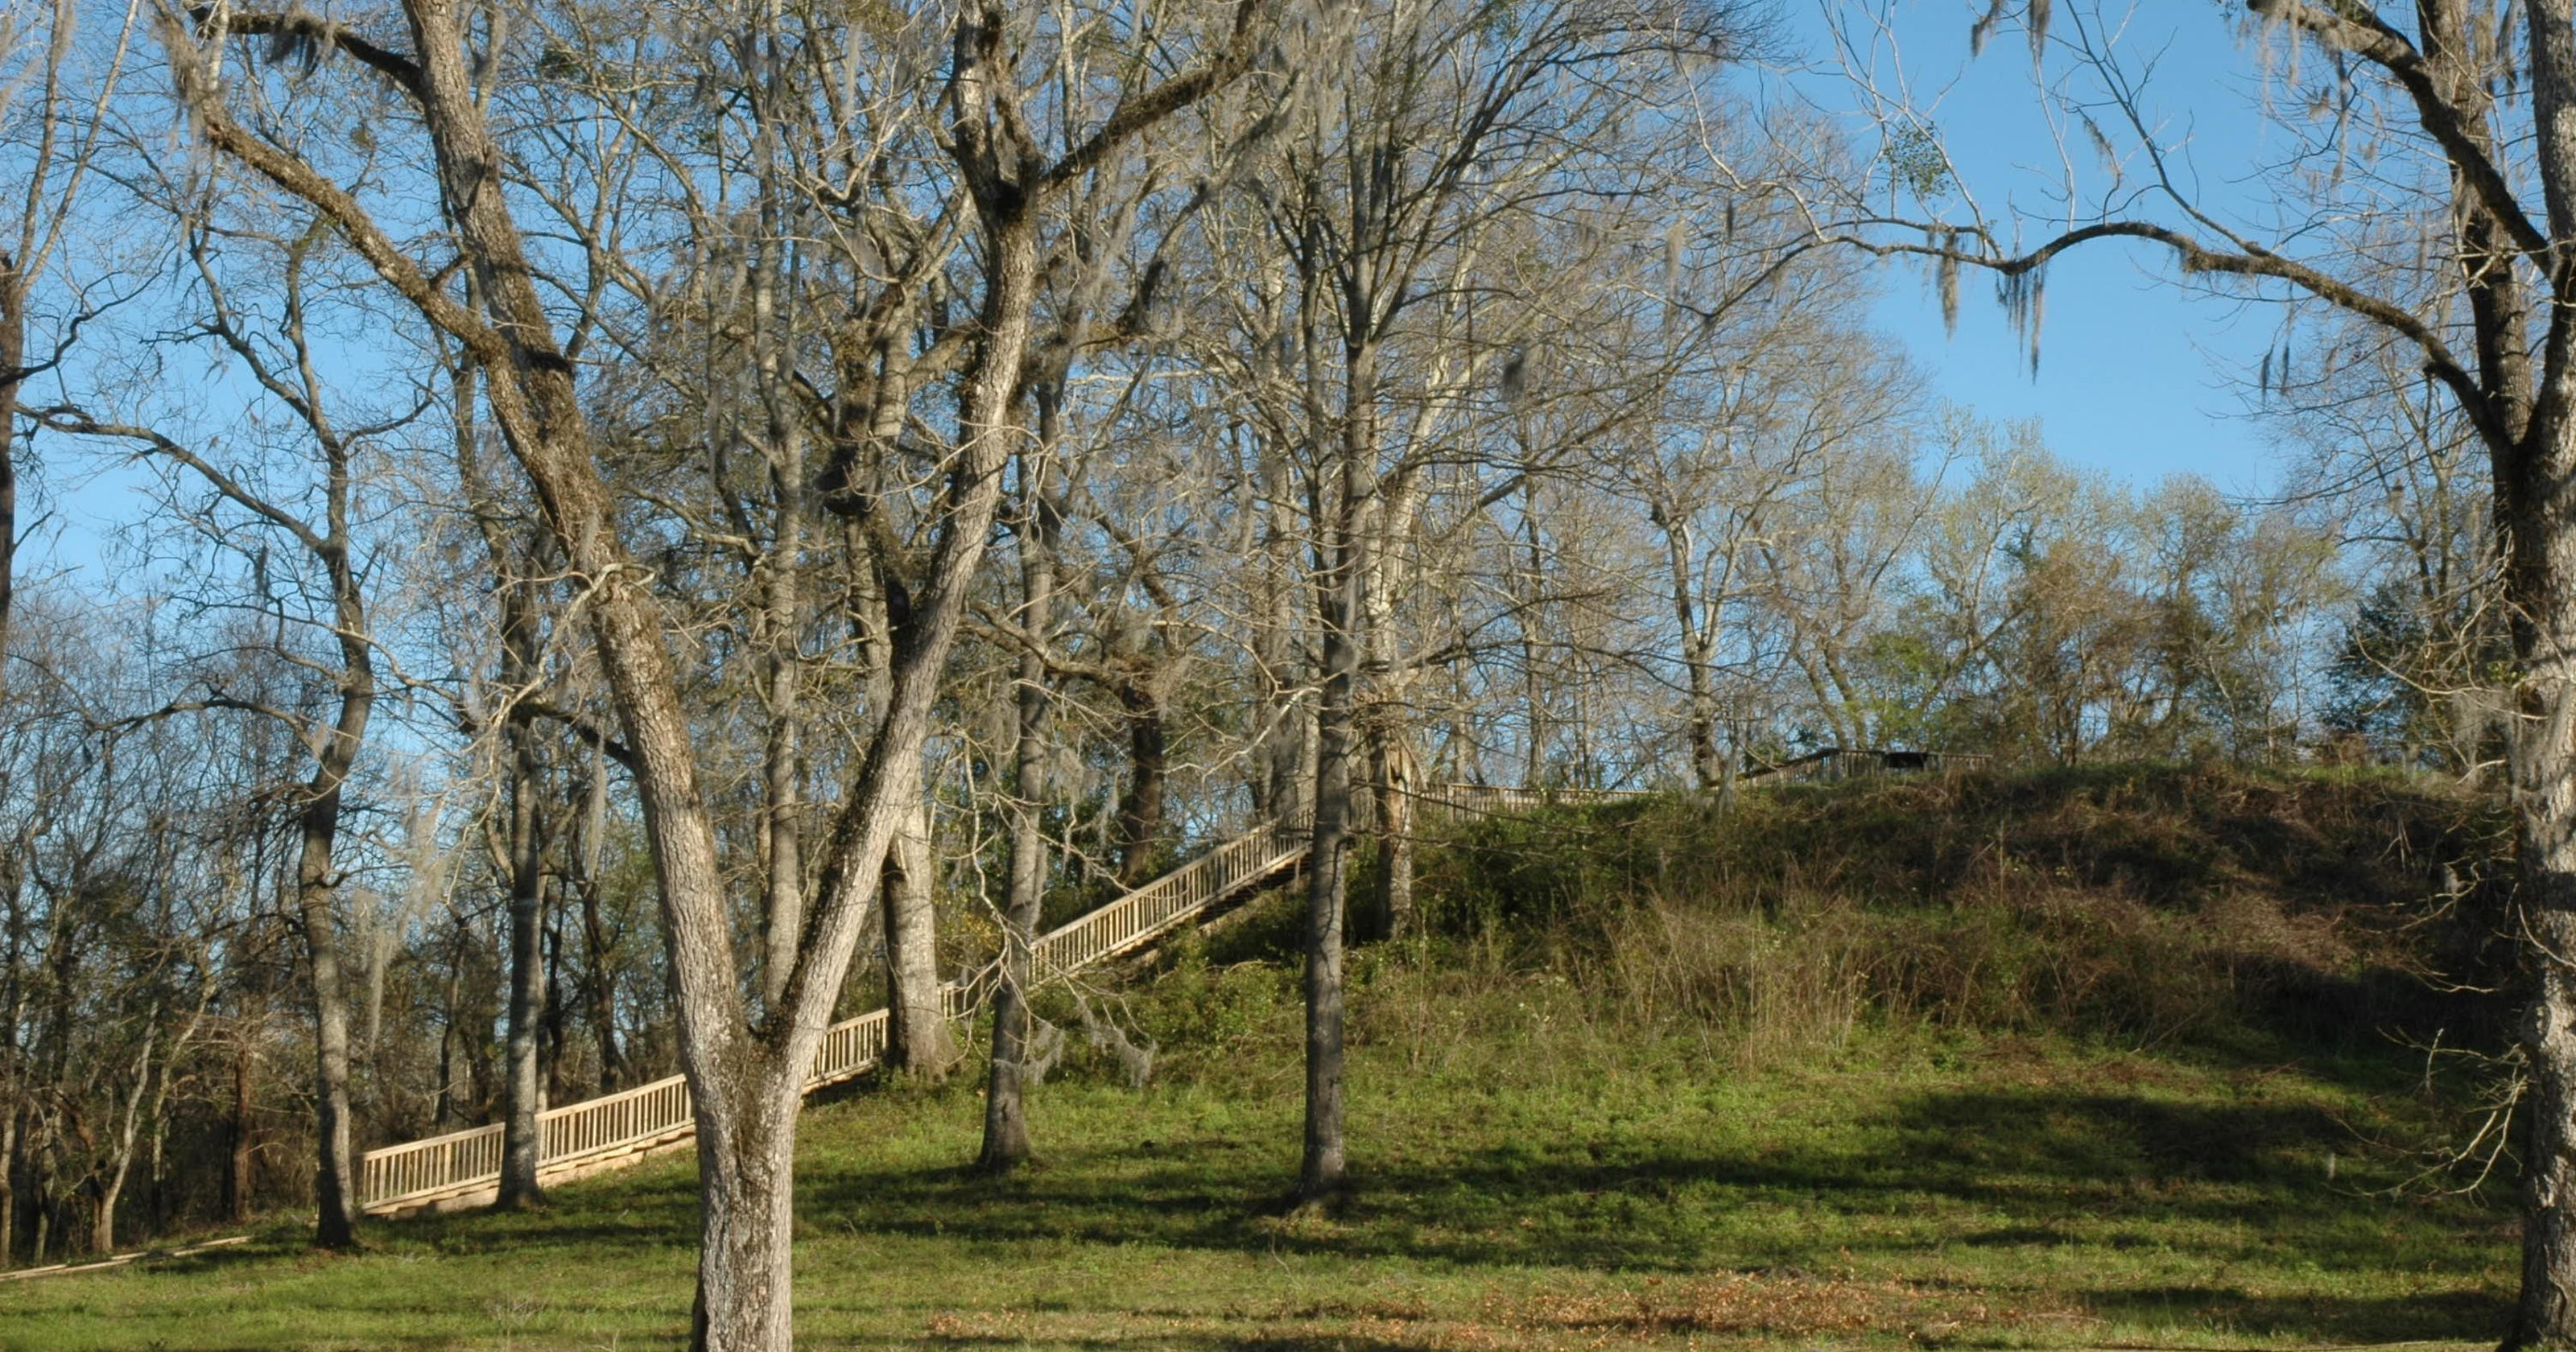 Lake Jackson Mounds reveal remnants of thriving culture